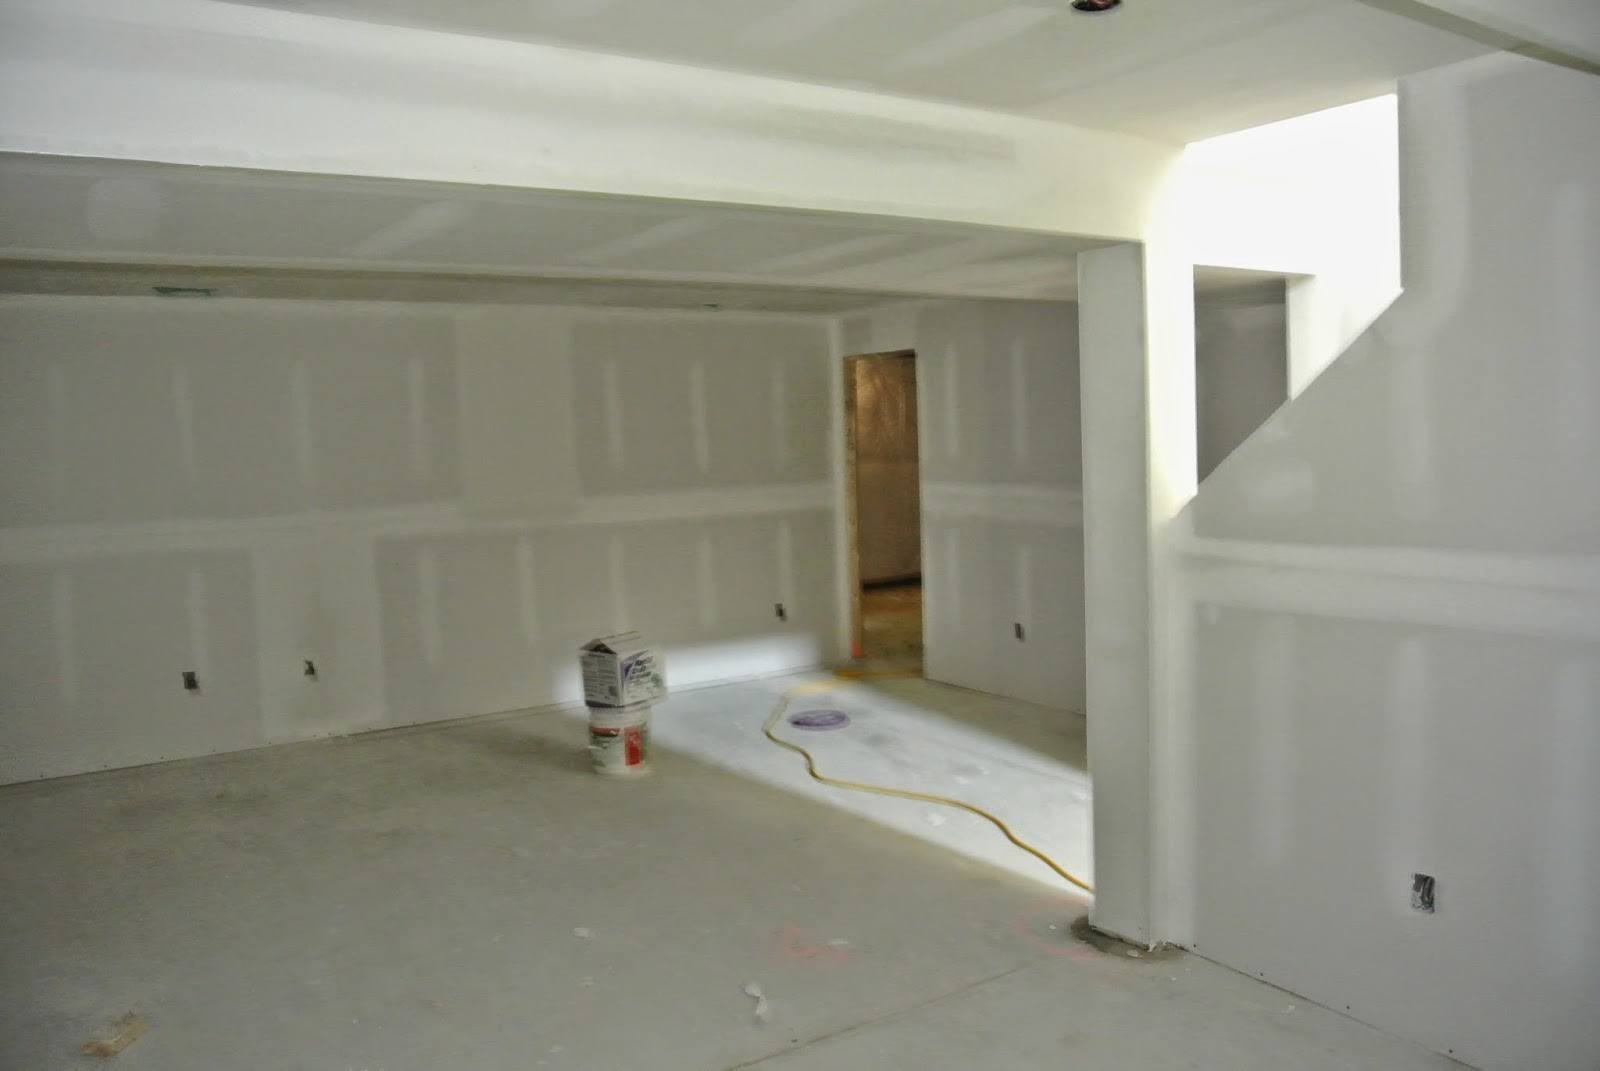 Picture of the finished basement view from front with drywall installed